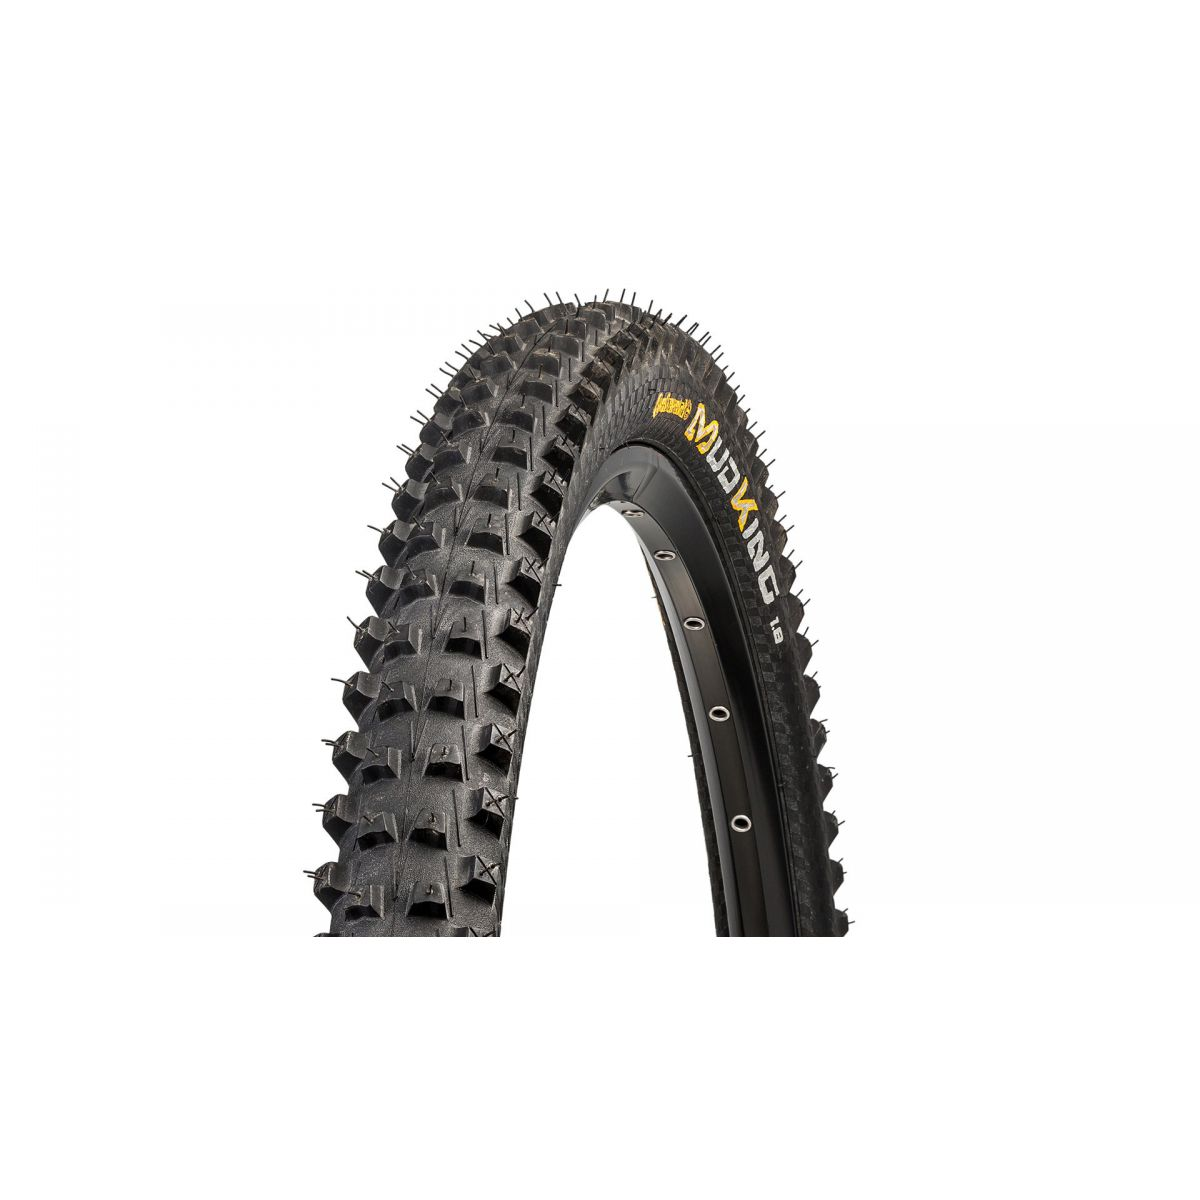 Pneu Continental Mud King 29x1.8 Protection  - IBIKES